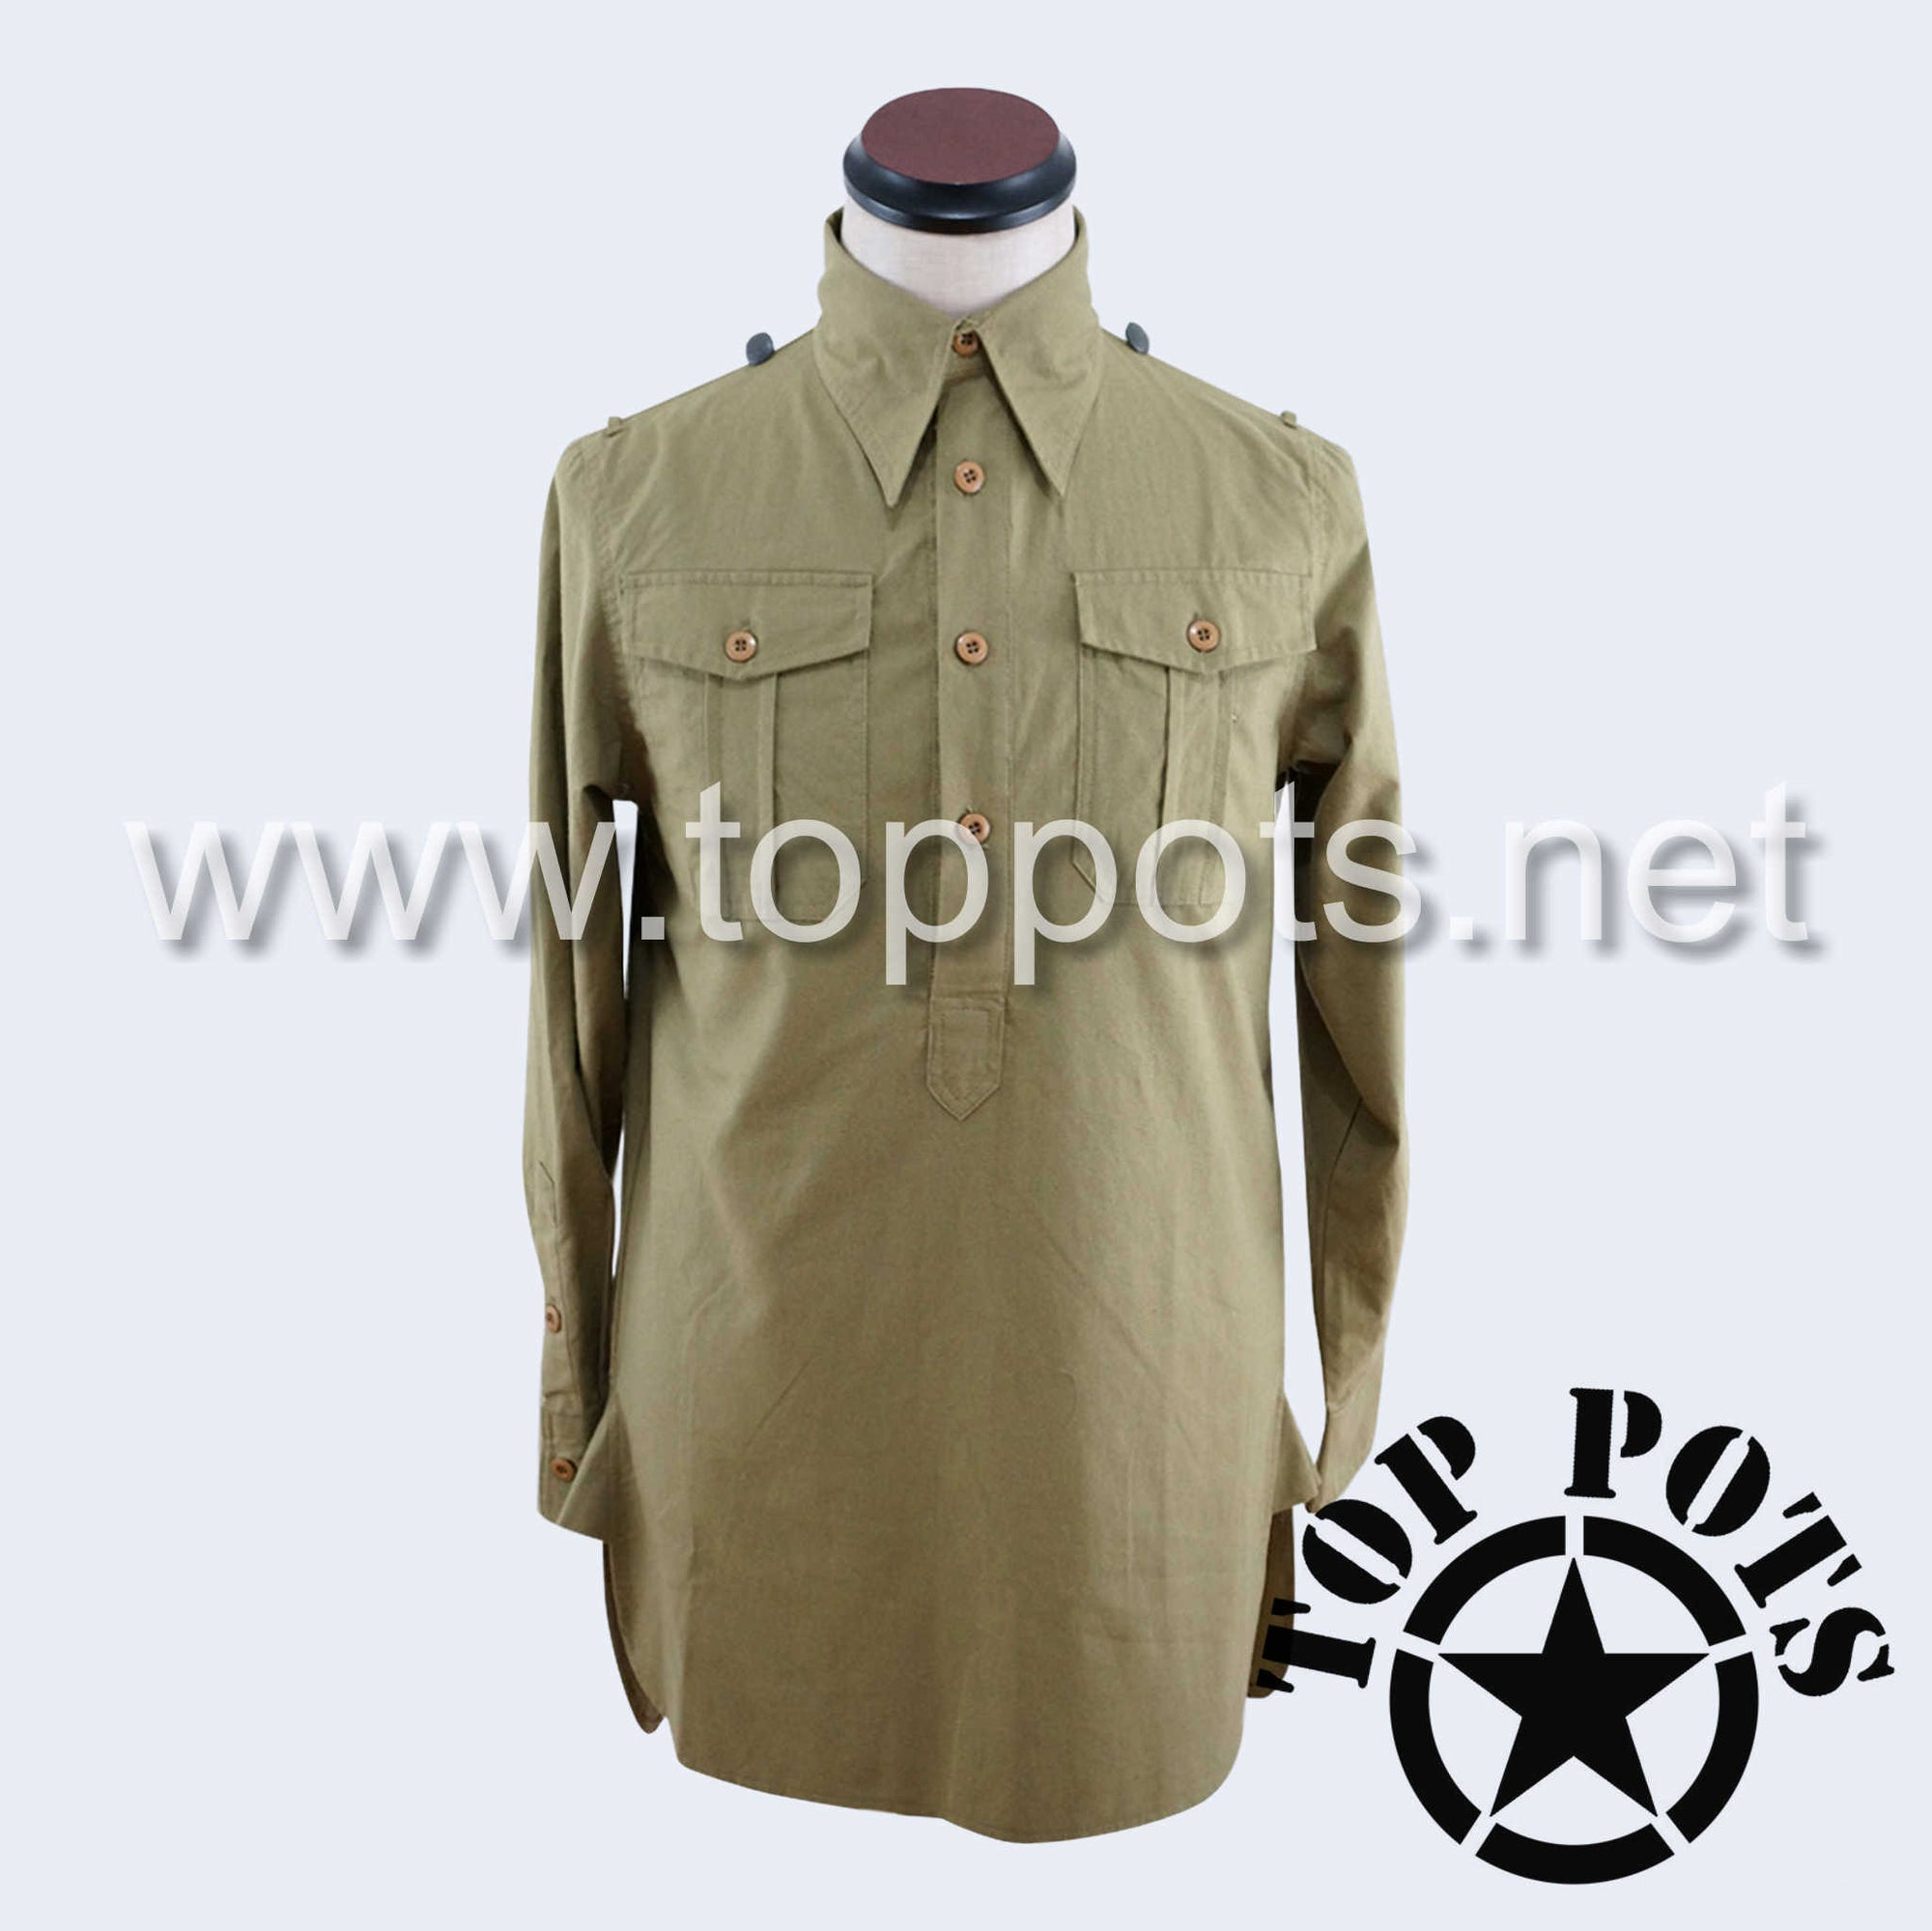 WWII German Army DAK Afrika Korps Heer Wehrmacht Officer Uniform Long Sleeve Service Shirt - Sand Khaki Tan